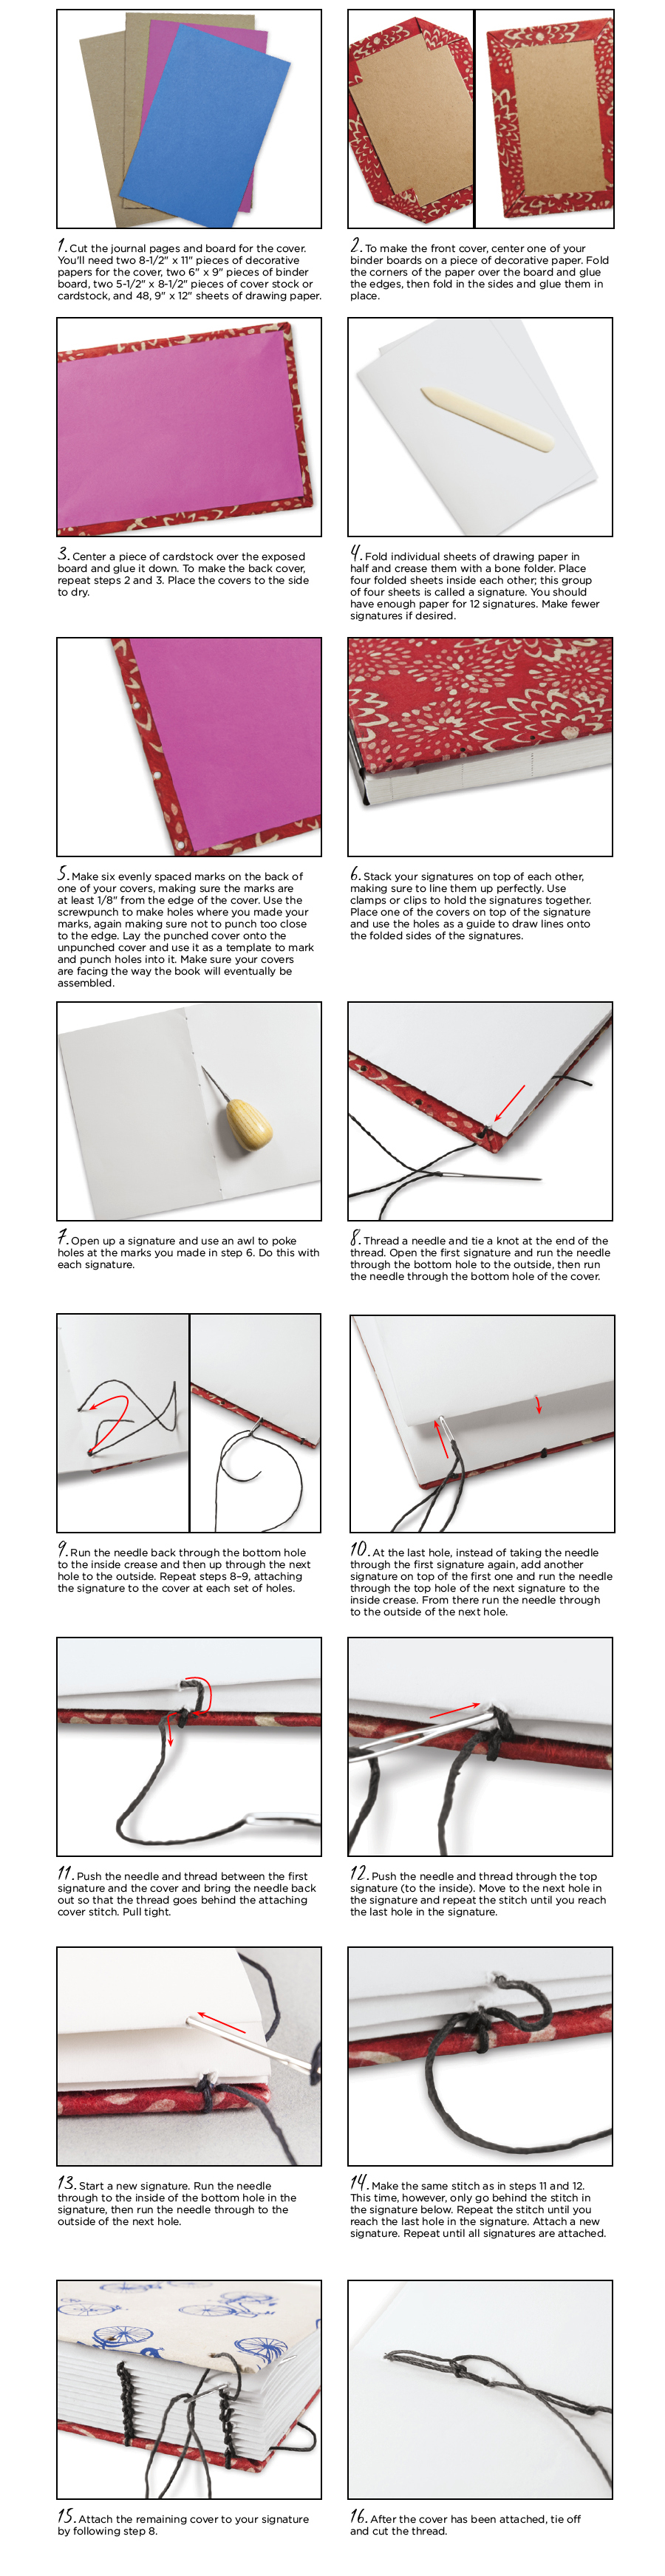 Soft Cover Book Binding Tutorial : Hard cover coptic stitch ideas pictures to pin on